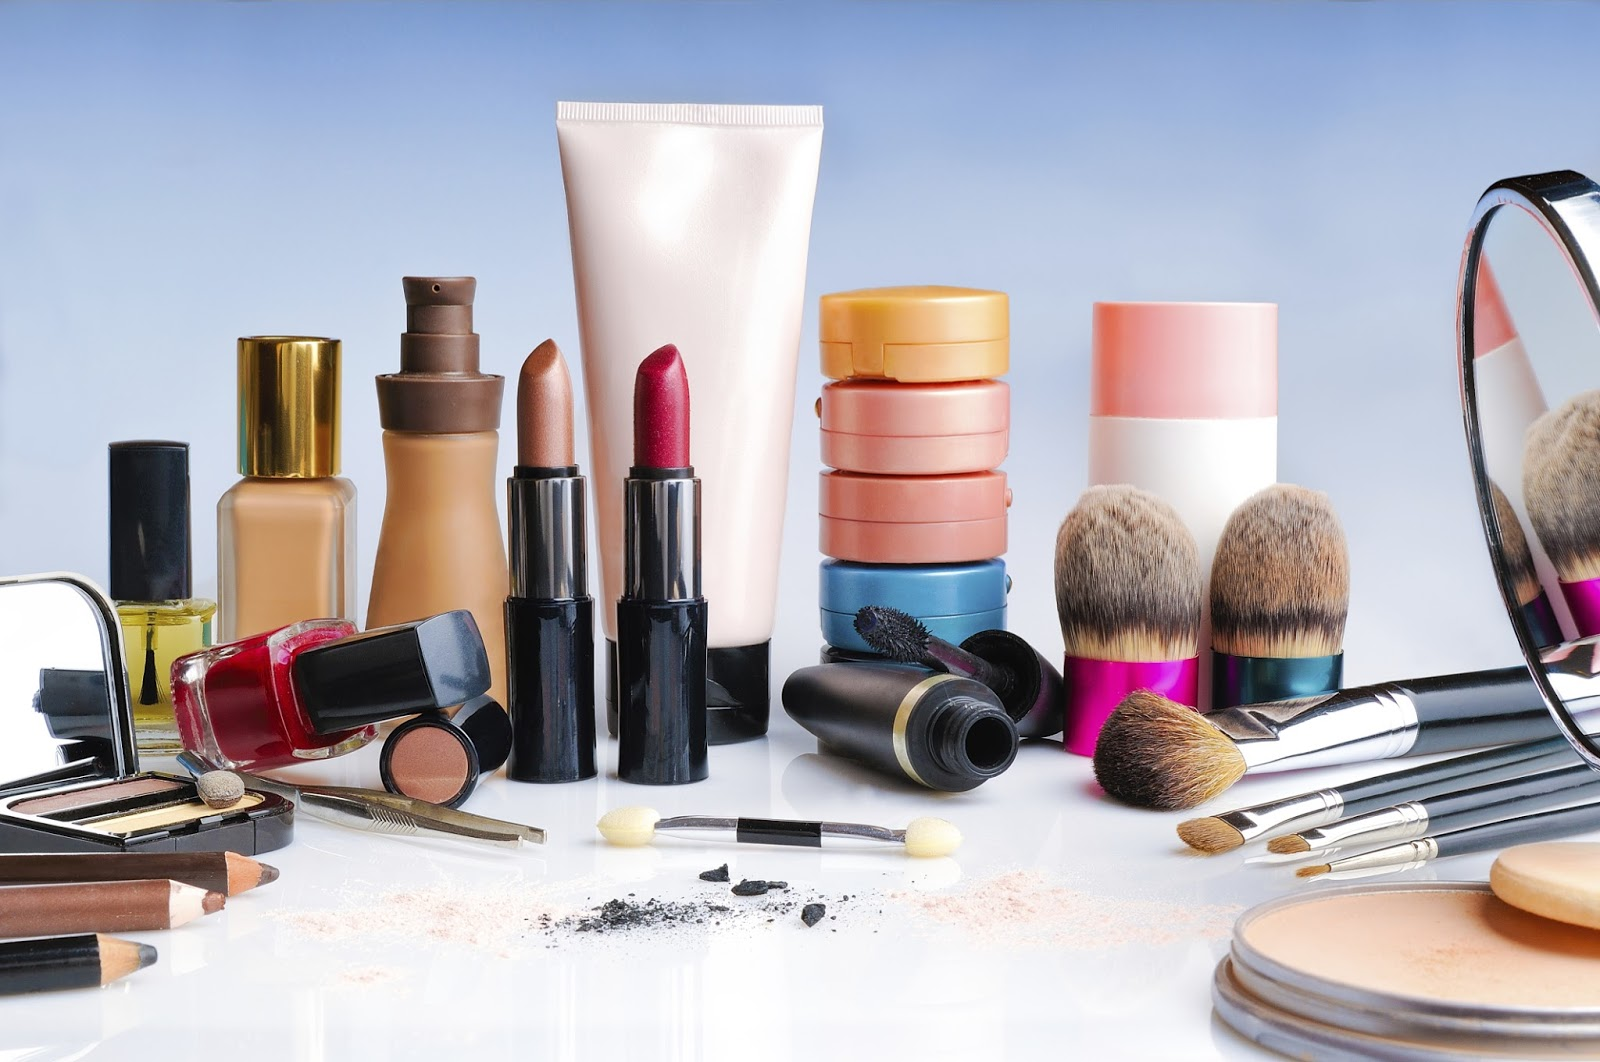 Why Should You Buy Cruelty Free Cosmetics For Yourself Or Your Friends?